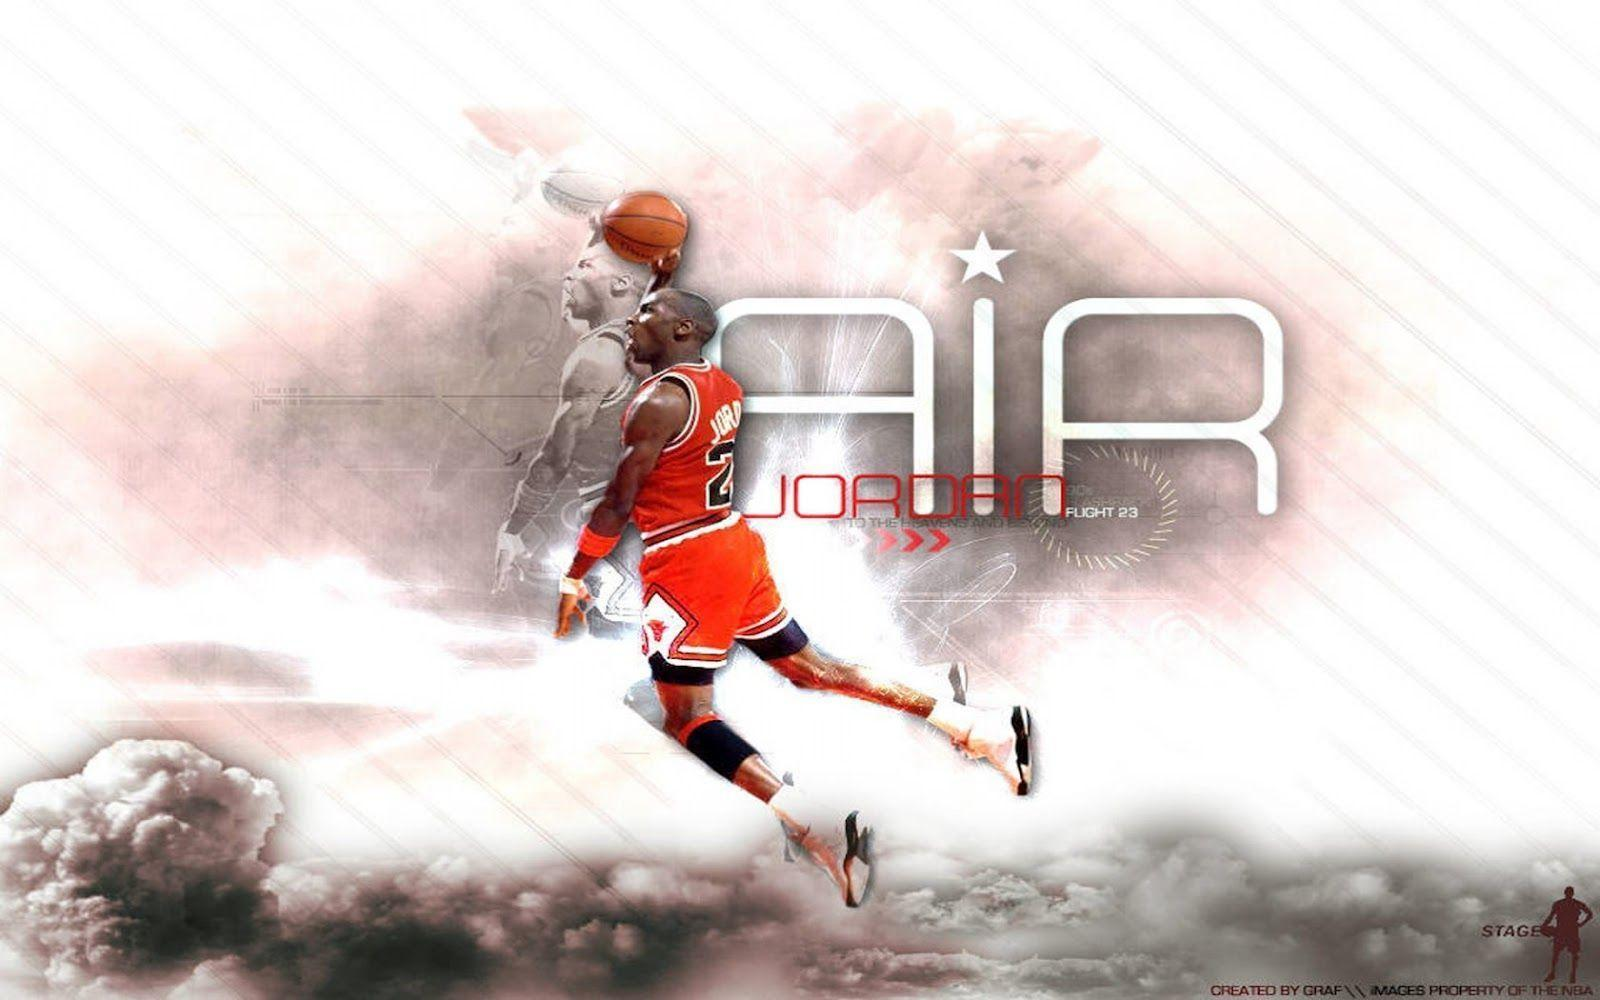 Jordan Dunk Wallpapers...